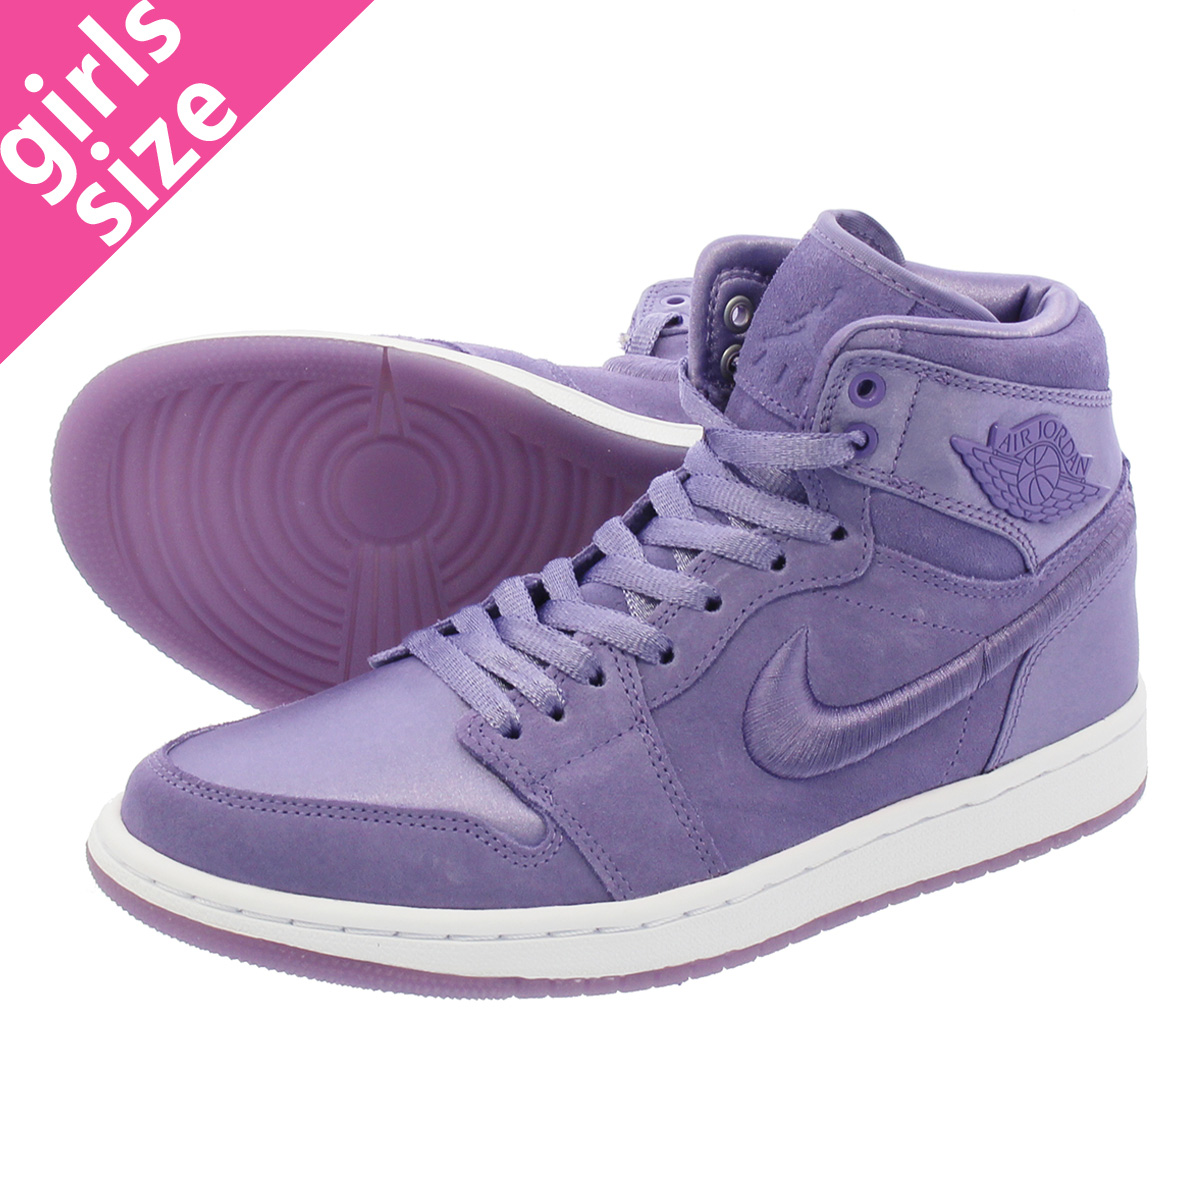 NIKE WMNS AIR JORDAN 1 RETRO HIGH SOH 【SEASON OF HER】 ナイキ ウィメンズ エア ジョーダン 1 レトロ ハイ PURPLE/WHITE/GOLD ao1847-540